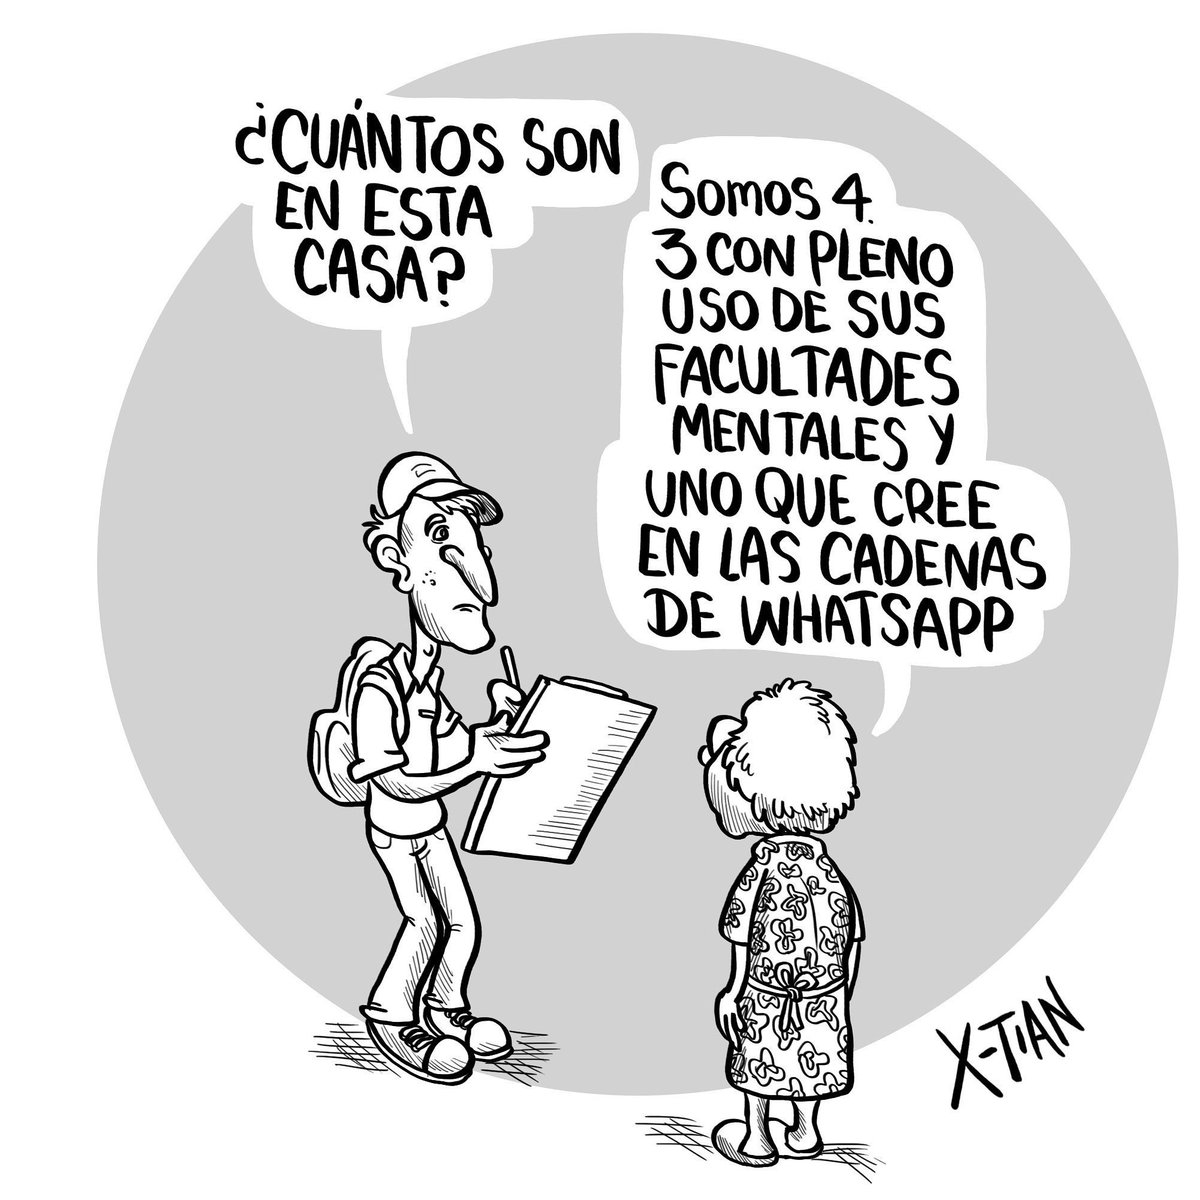 El censo. https://t.co/ncfbeEhrIM